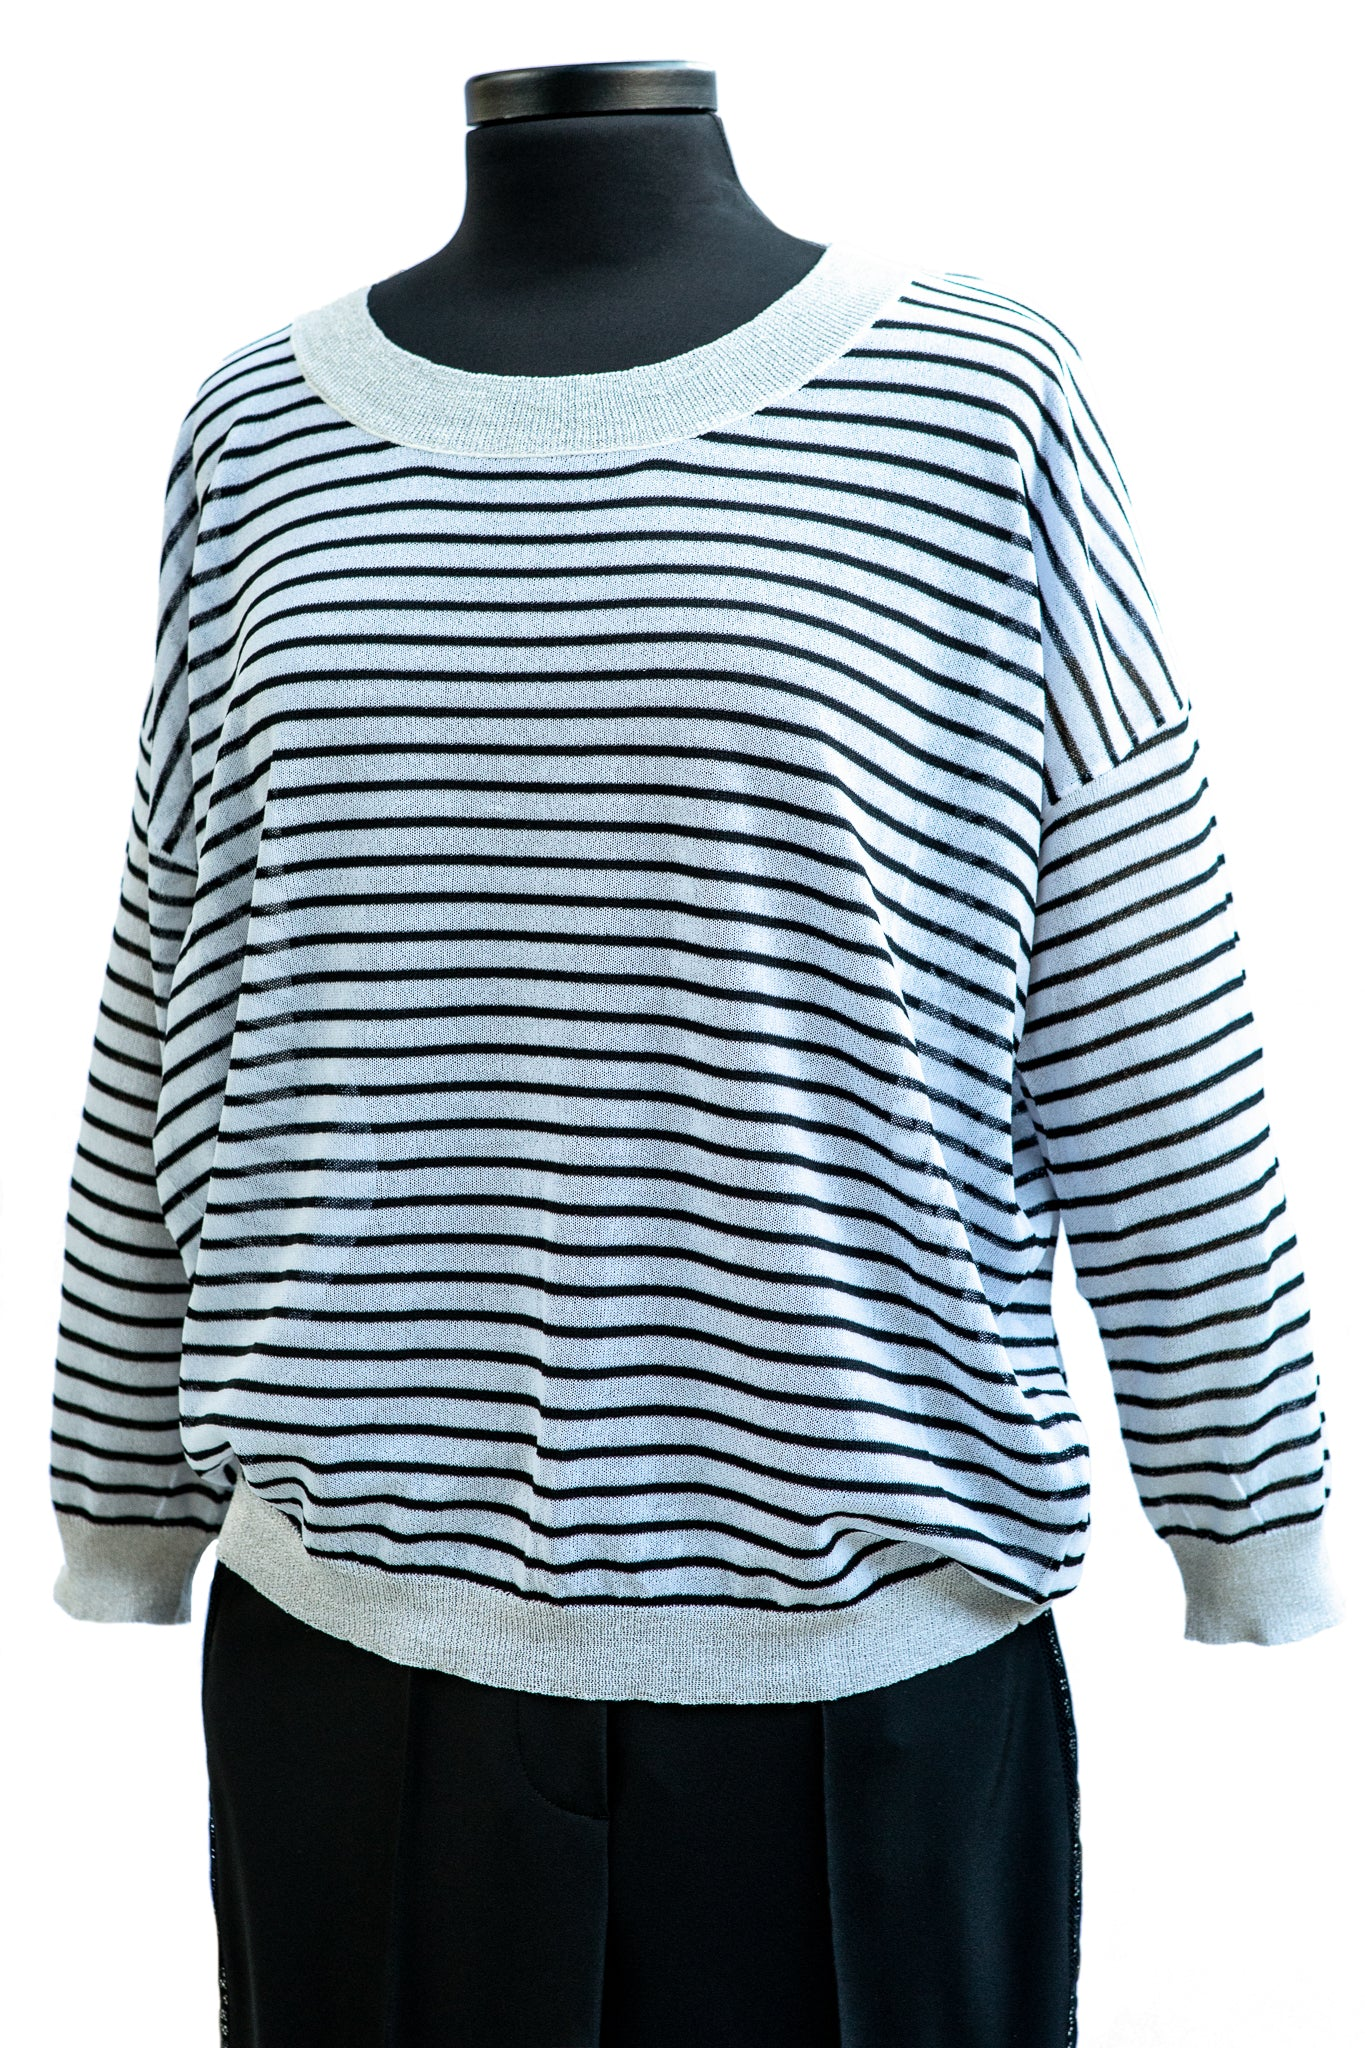 Molly Bracken Black Striped Sweater